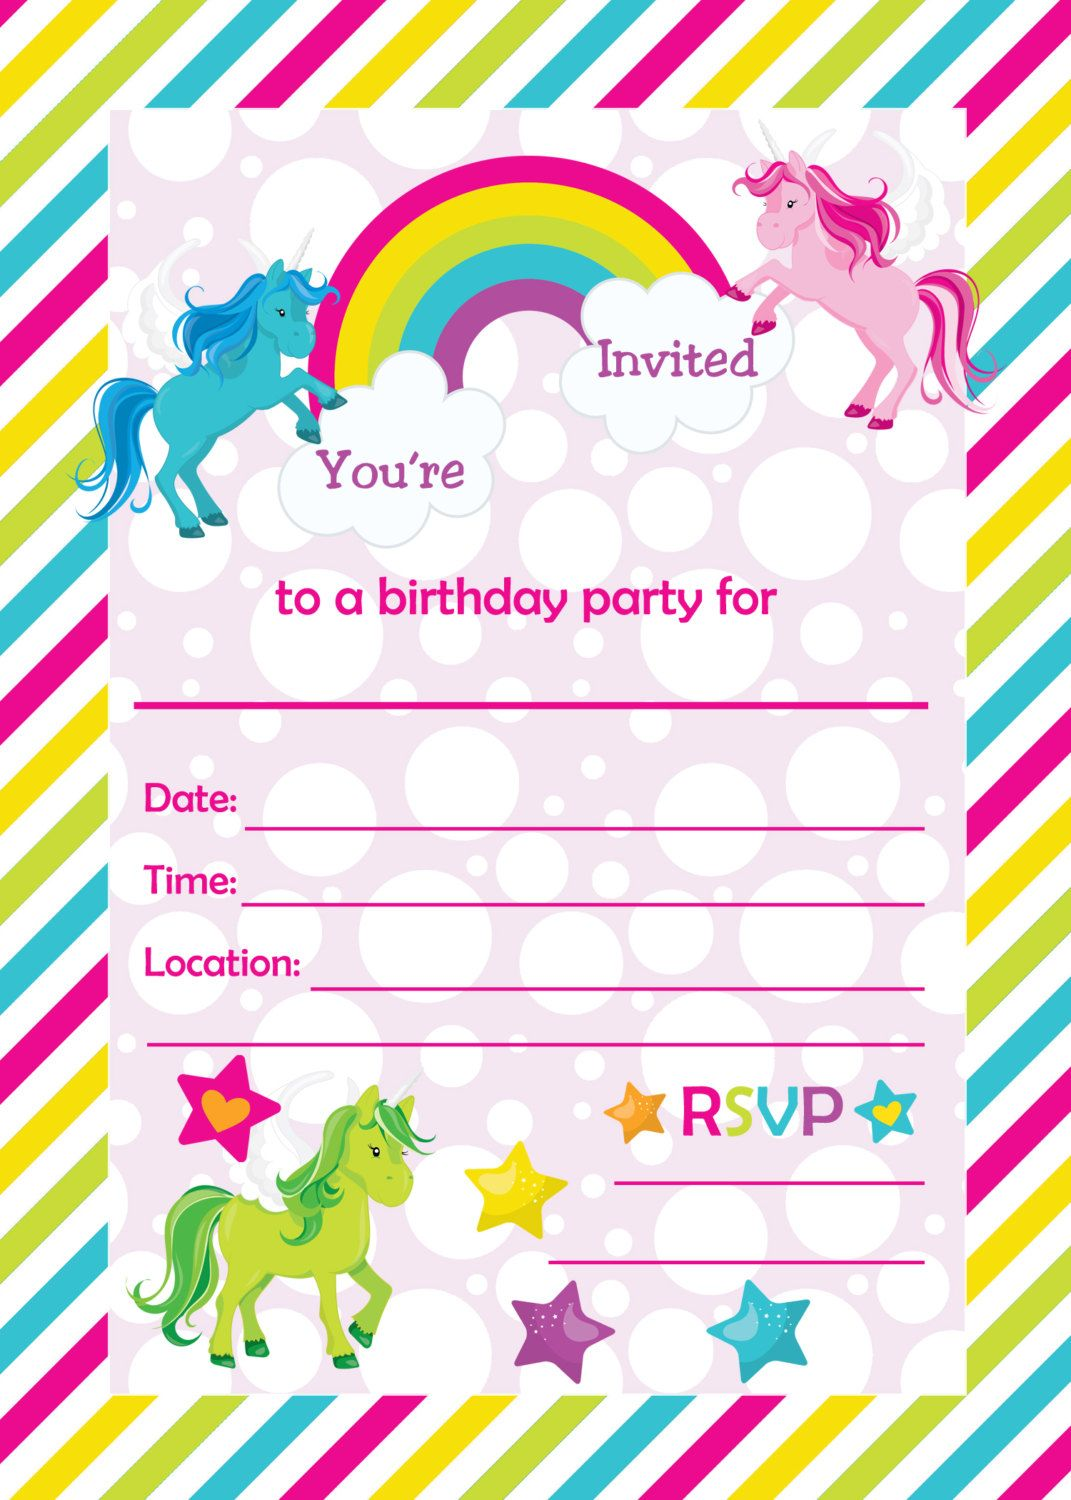 picture relating to Printable Party Invitations identify Absolutely free Printable Golden Unicorn Birthday Invitation Template